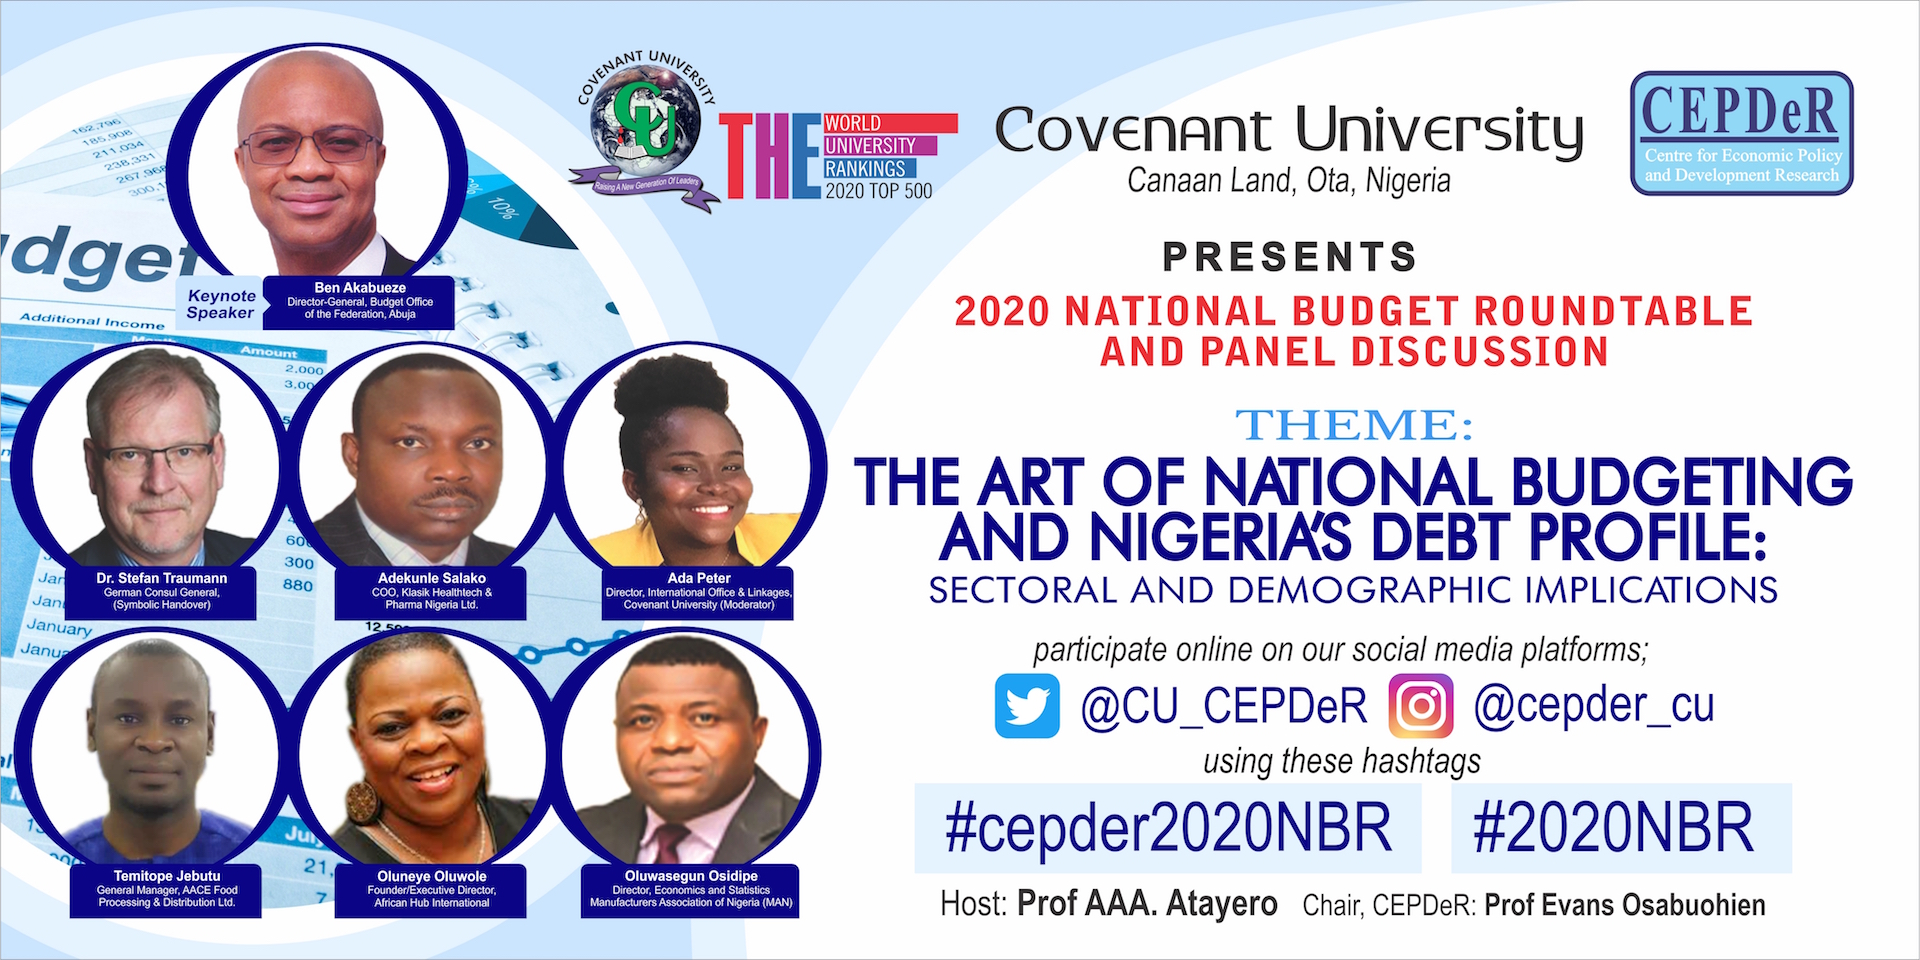 2020 National Budget Roundtable and Panel Discussion On 'The Art Of National Budgeting and Nigeria's Debt Profile: Sectoral and Demographic Implications'